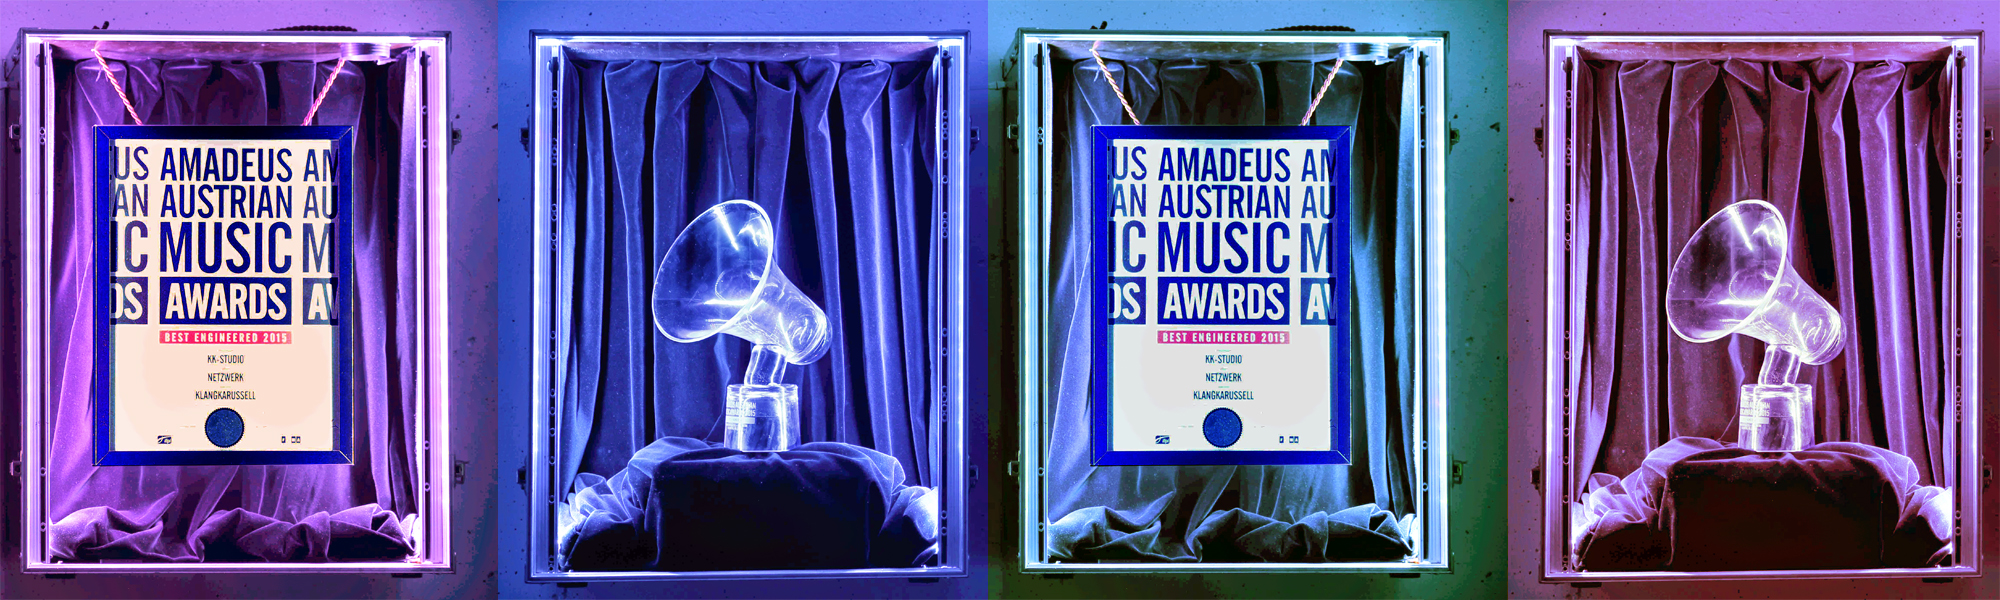 Amadeus Music Award Winner